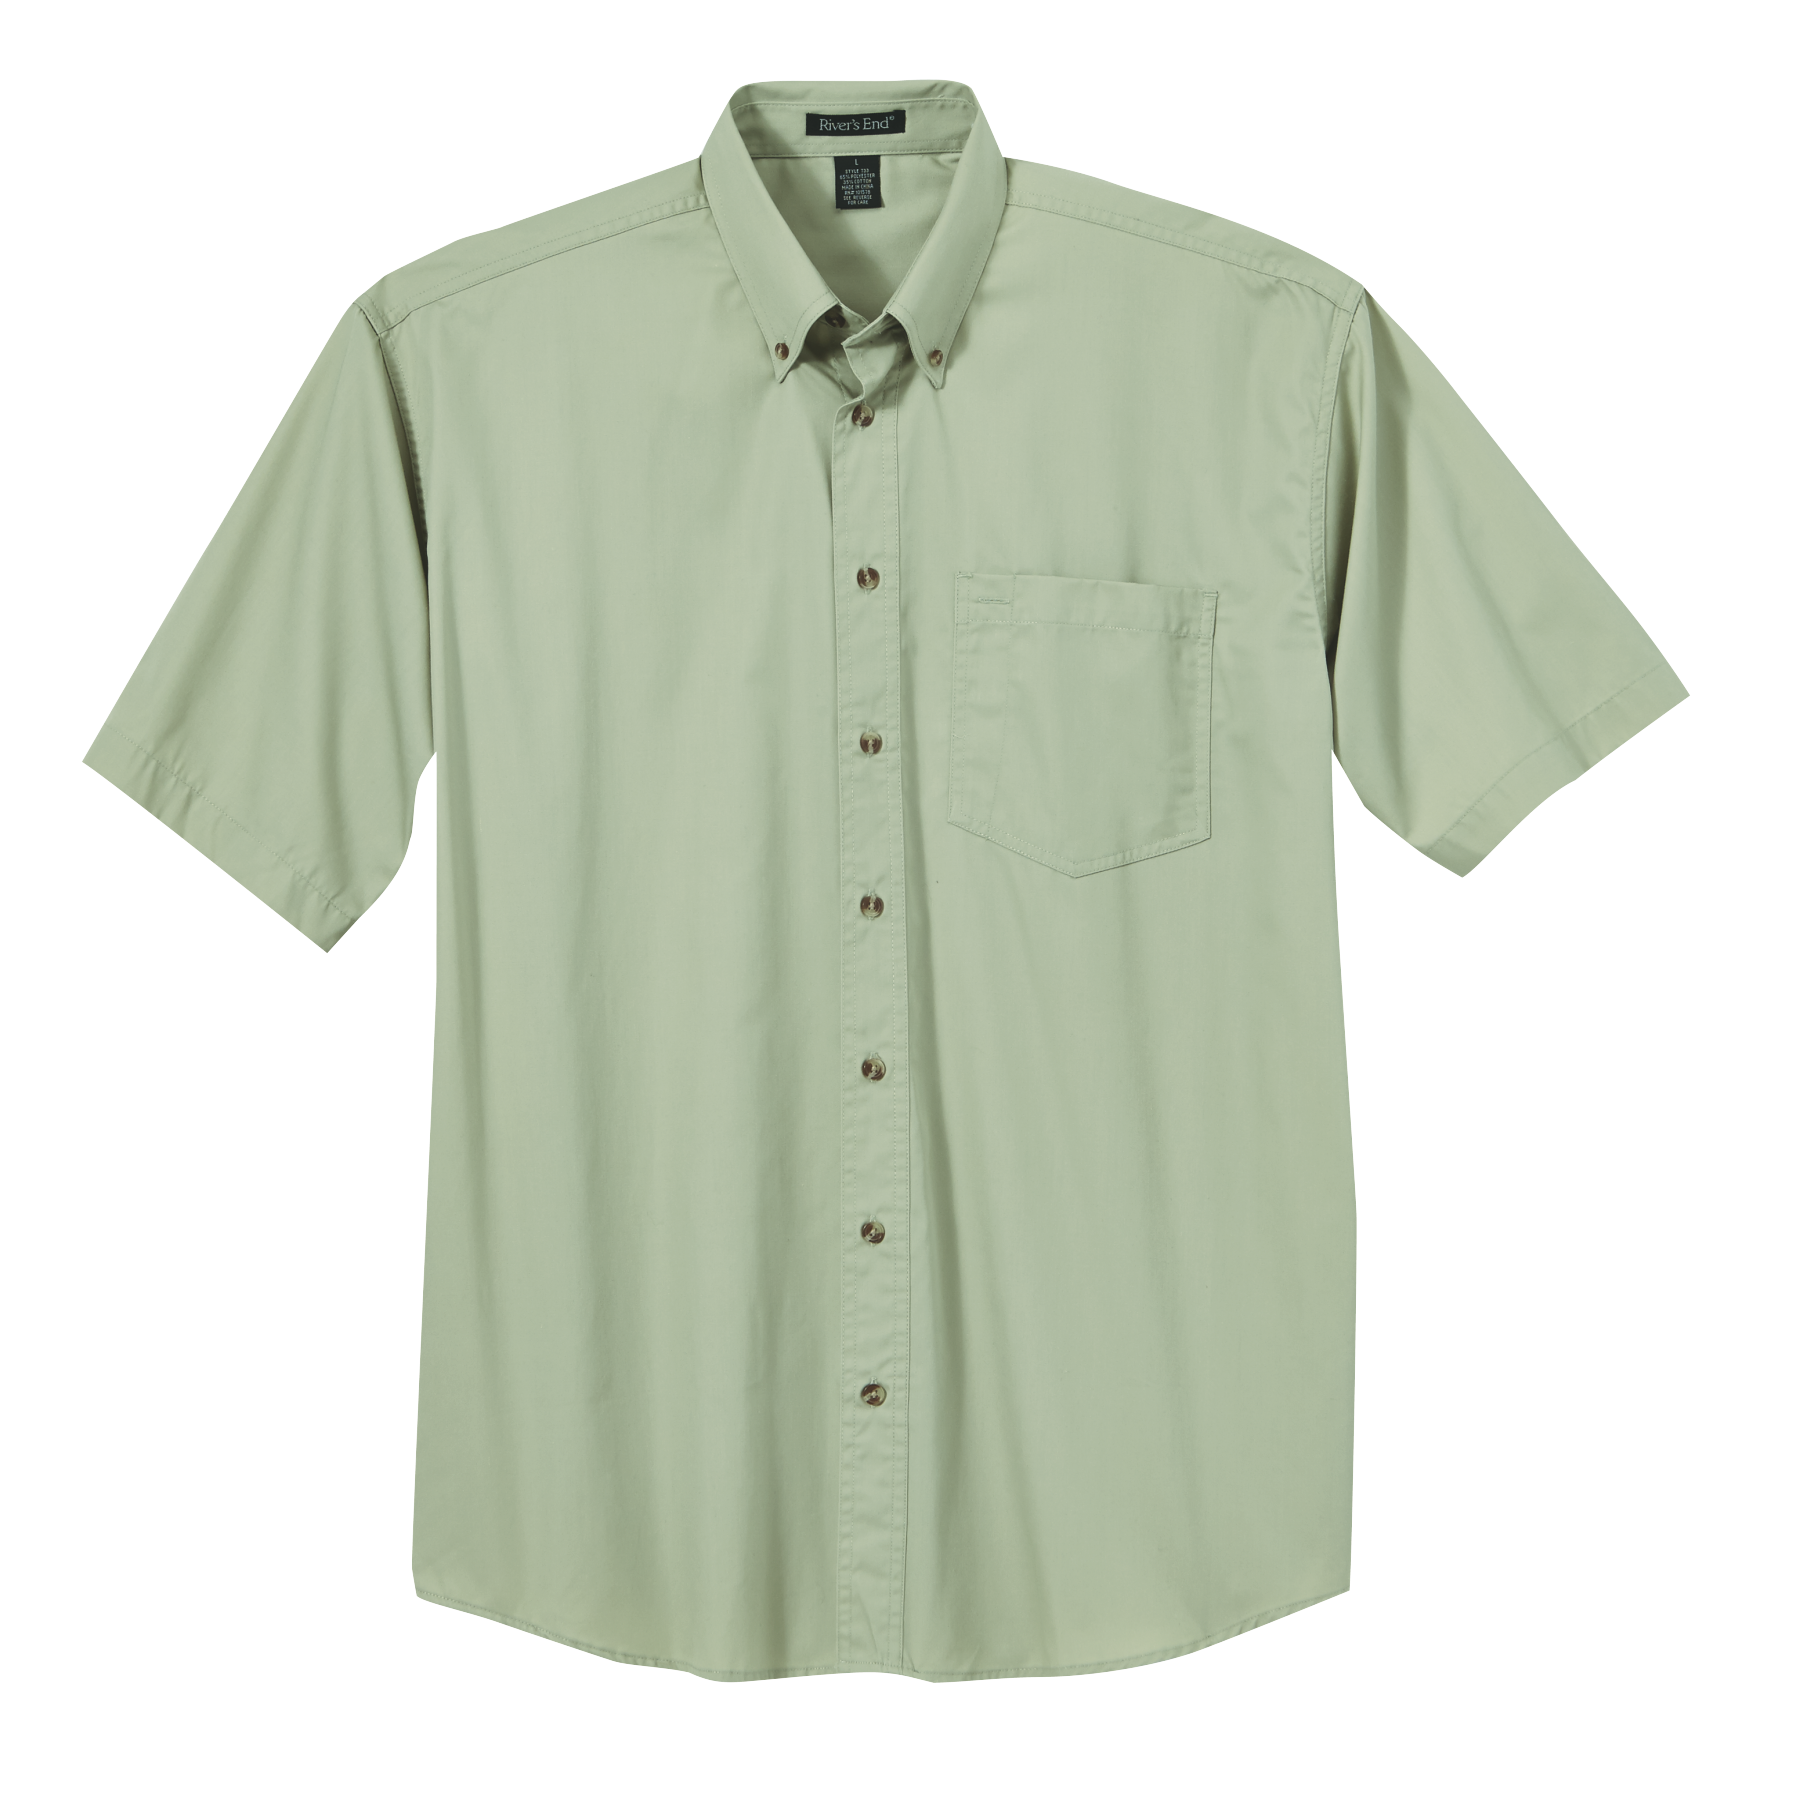 JCPenney - FREE shipping available on great-fitting men's short sleeve dress shirts. Save on our large assortment of men's short sleeve dress shirts.